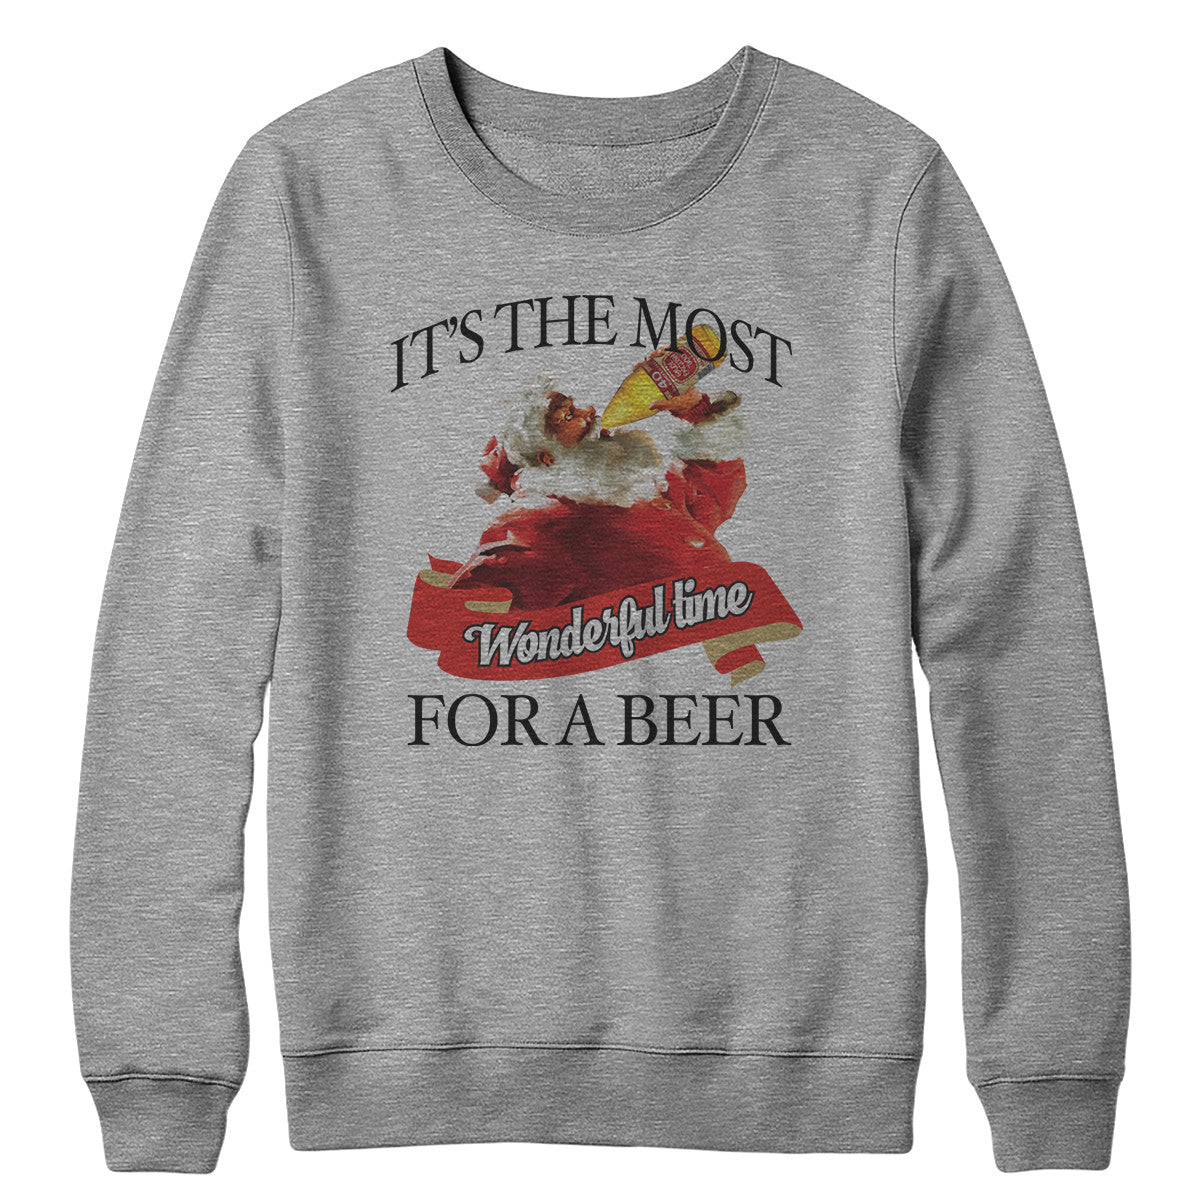 The Most Wonderful Time Crewneck Sweatshirt